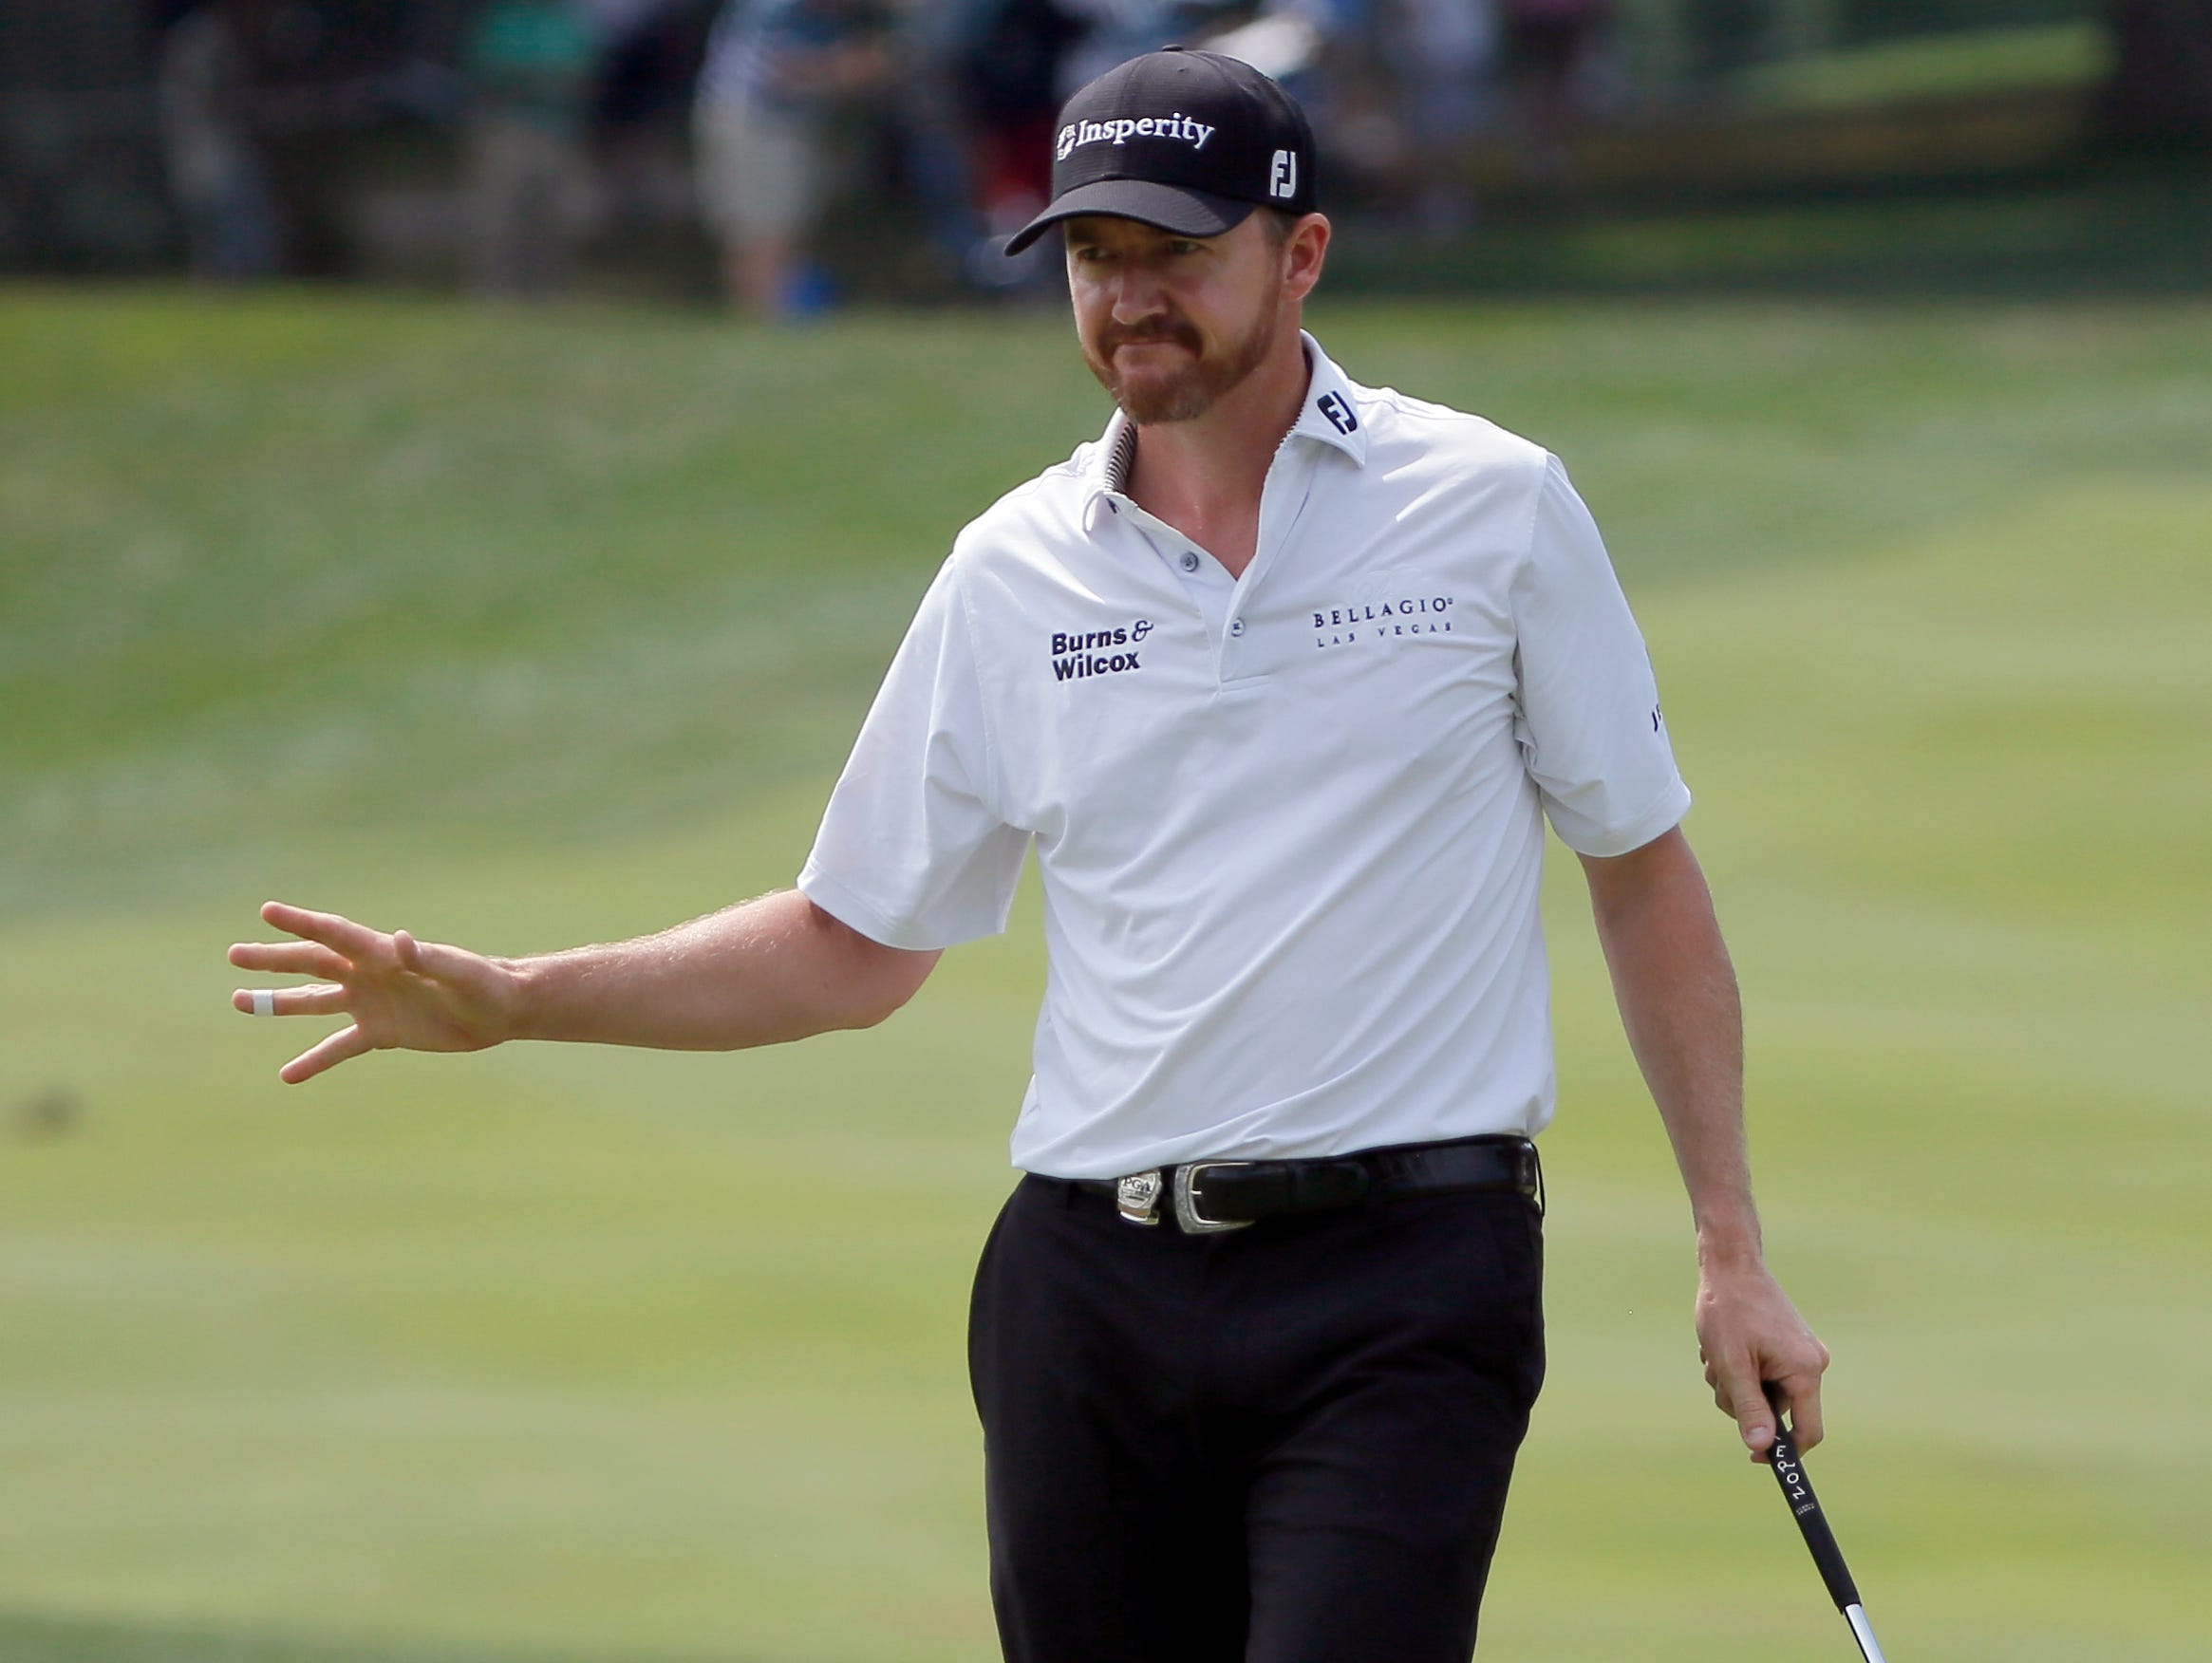 Jimmy Walker reacts to his putt on the third hole during the first round of the PGA Championship golf tournament at Baltusrol Golf Club in Springfield, N.J.